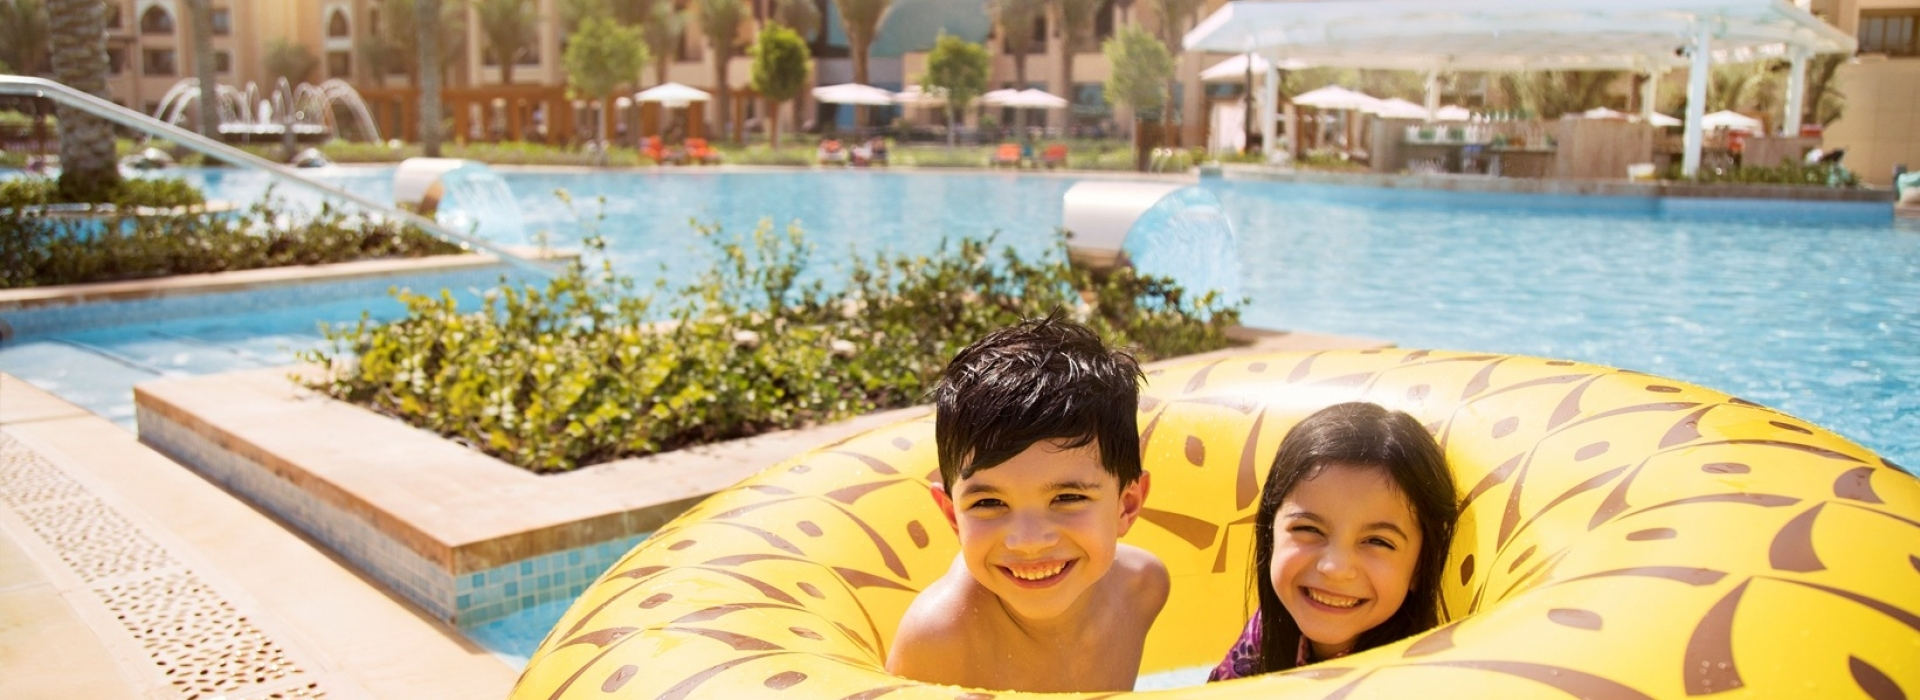 Saadiyat Rotana Resort and Villas 5 * Deluxe